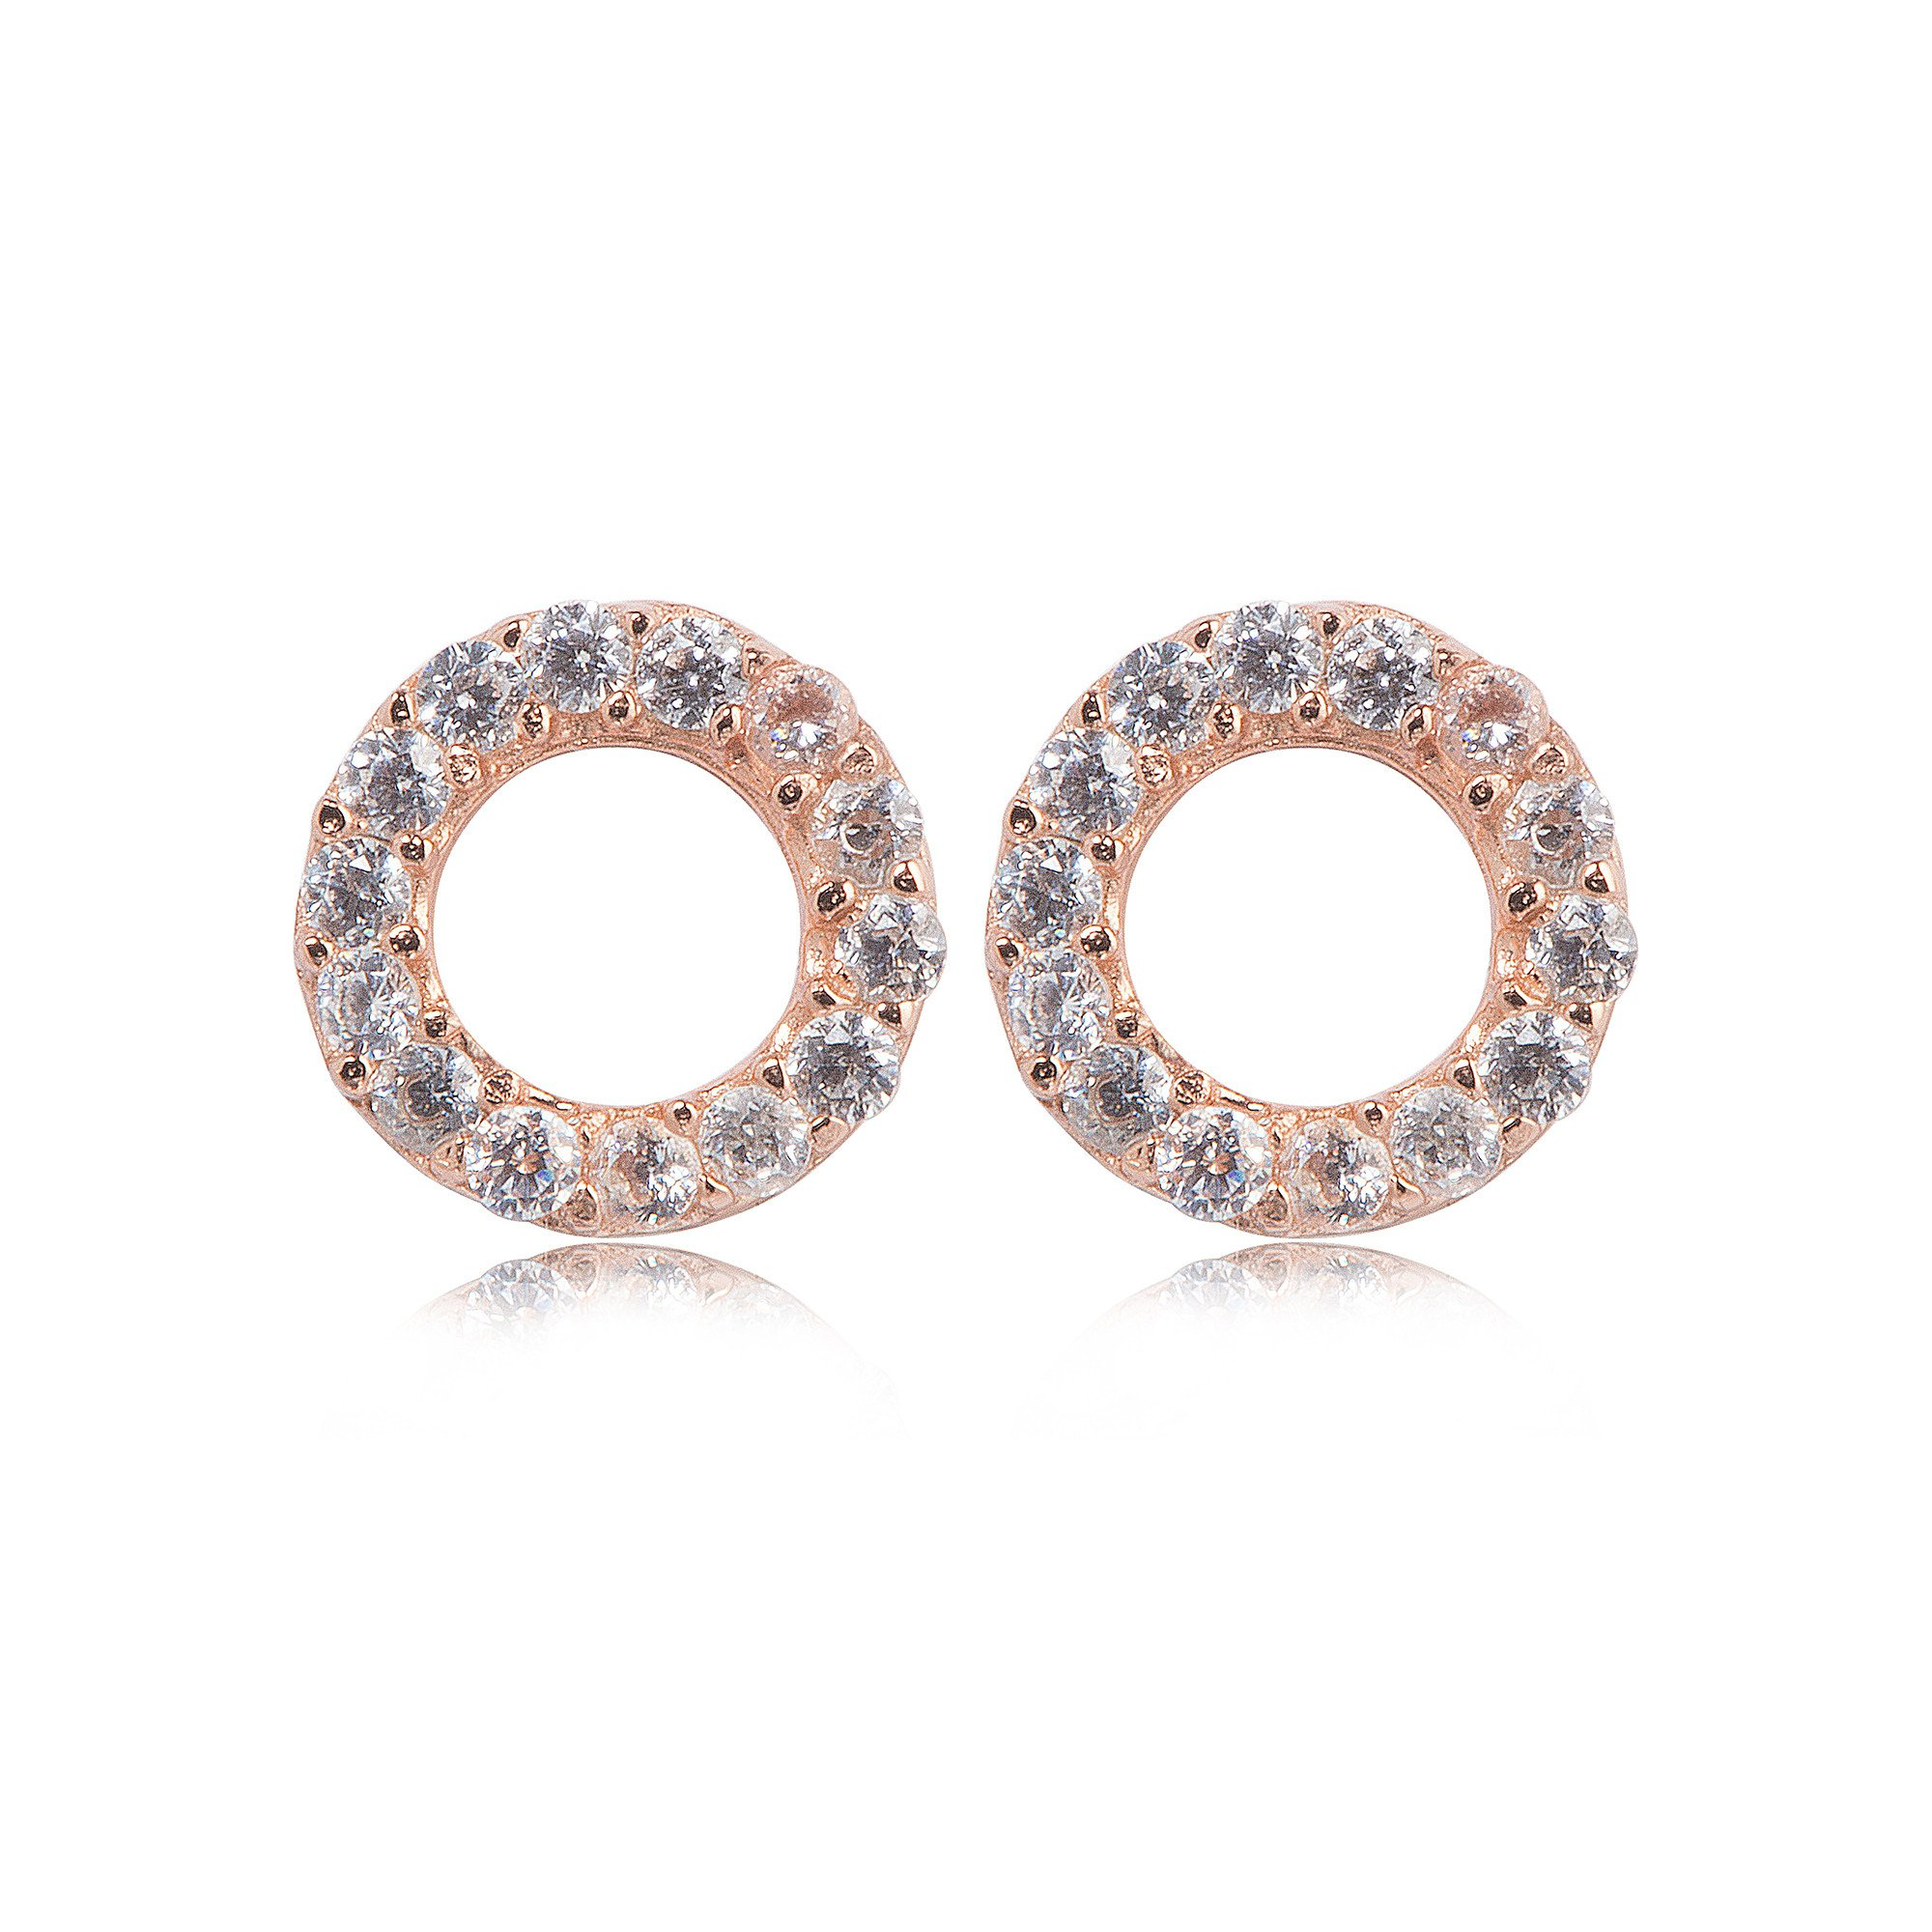 Stud Earrings Pave Open Circle CZ - Rose Gold Plated Sterling Silver EG-45/R